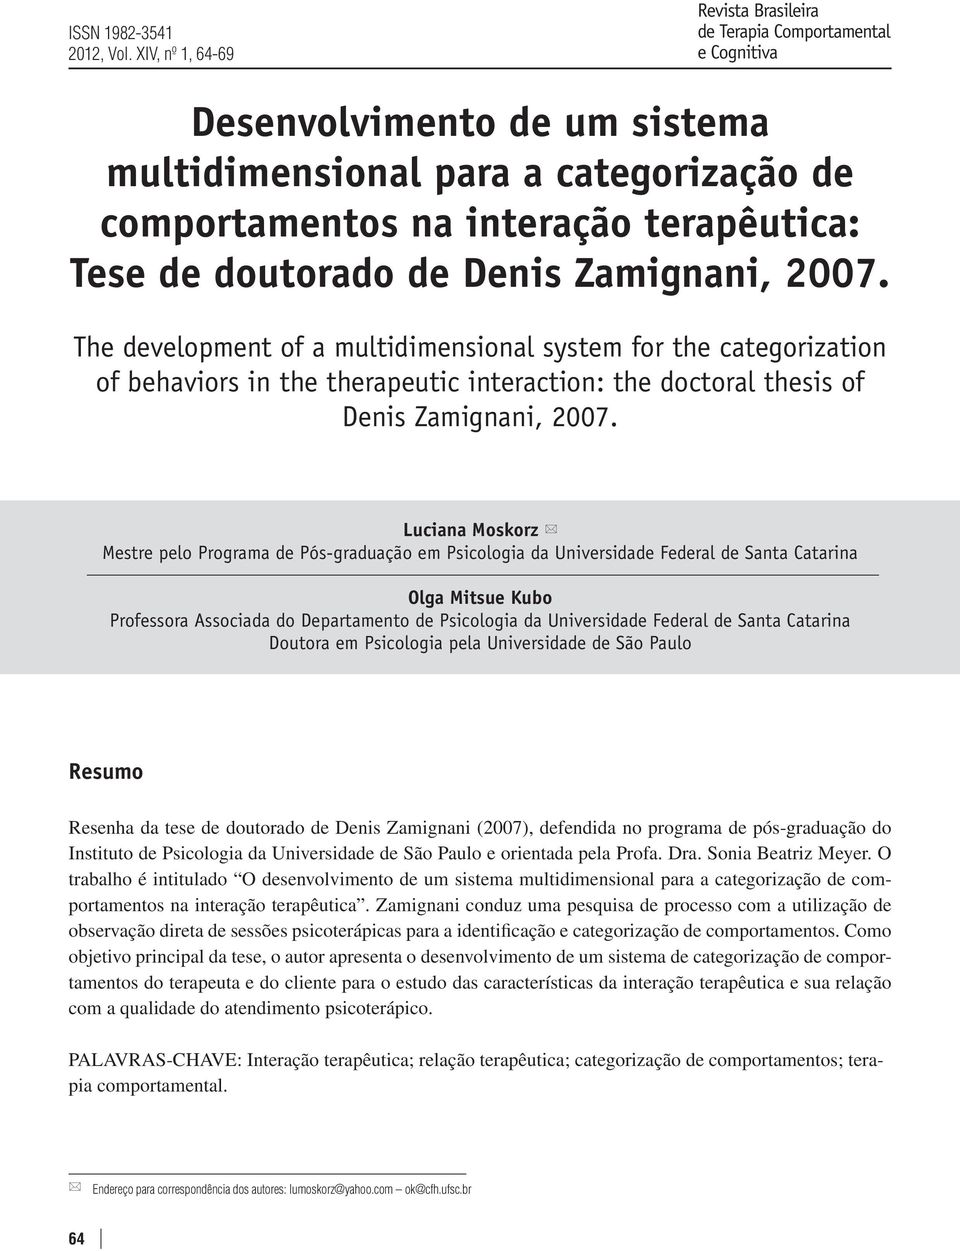 doutorado de Denis Zamignani, 2007. The development of a multidimensional system for the categorization of behaviors in the therapeutic interaction: the doctoral thesis of Denis Zamignani, 2007.